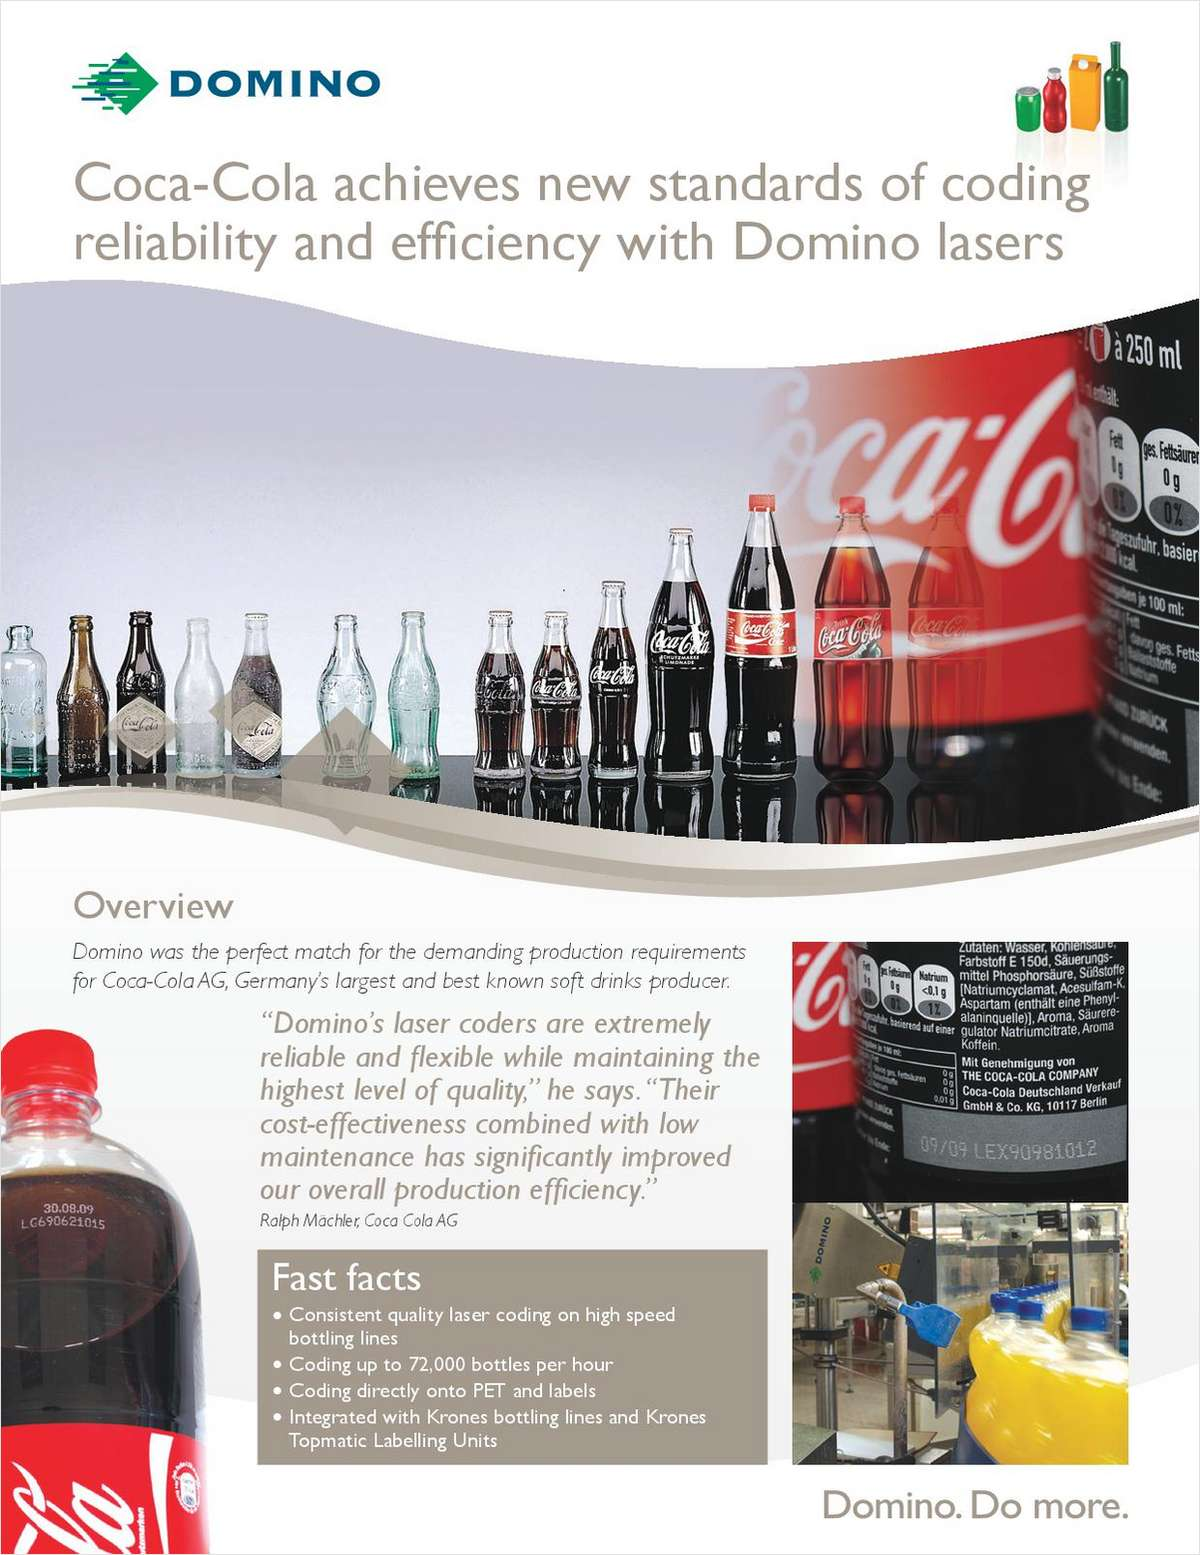 Coca-Cola Achieves New Standards of Coding Reliability and Efficiency With Domino Lasers